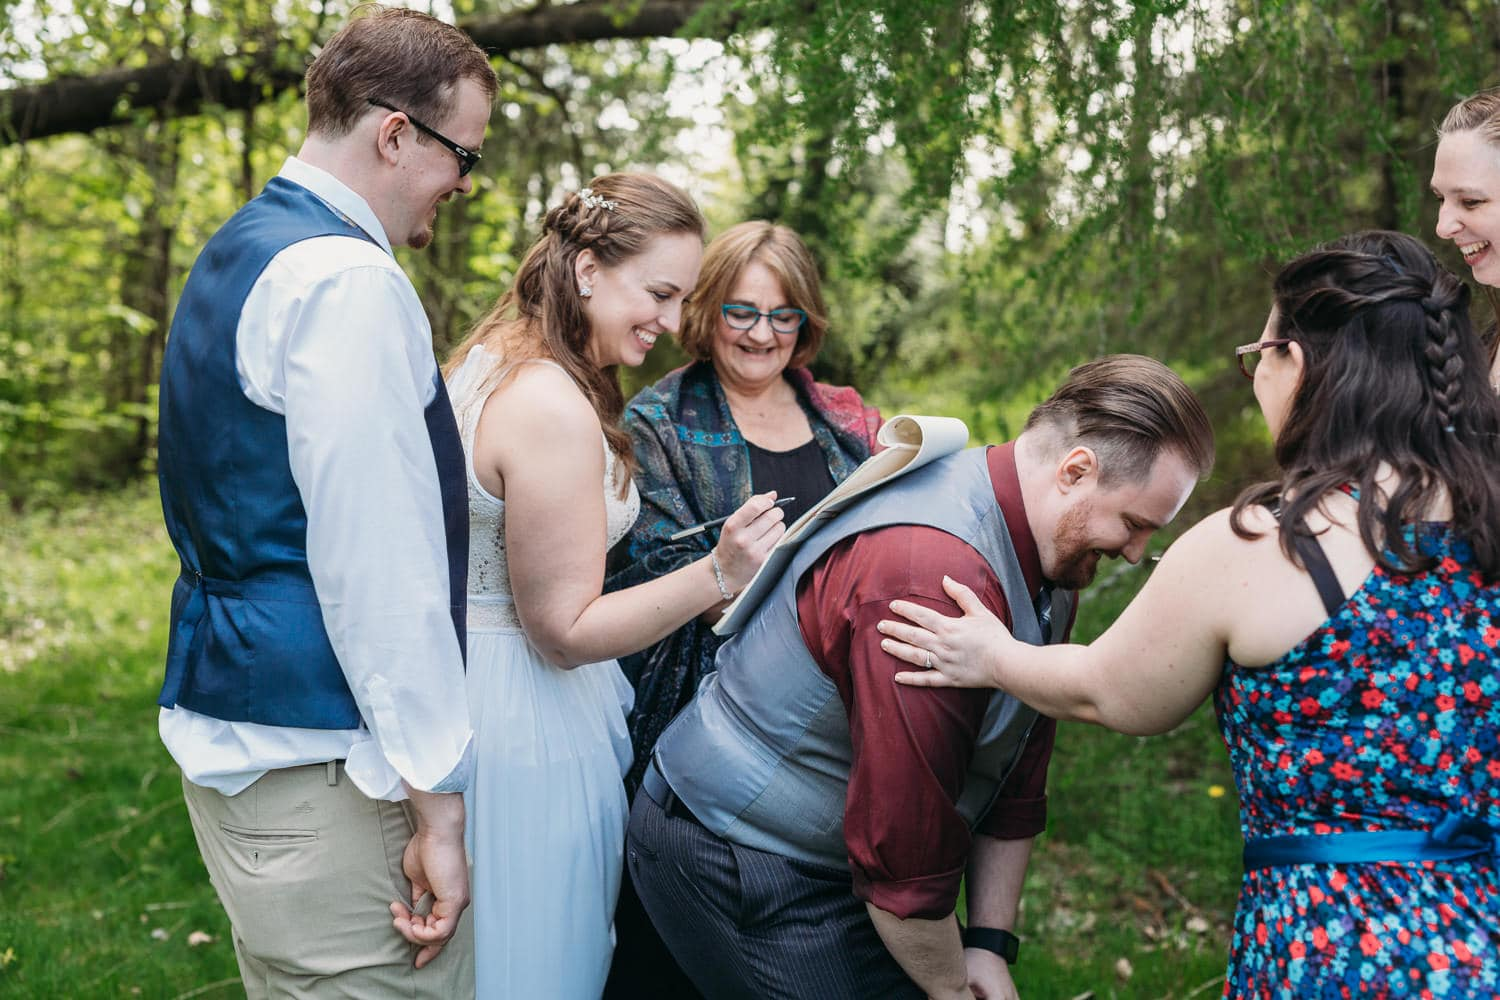 campbell valley park elopement signing on friend's back